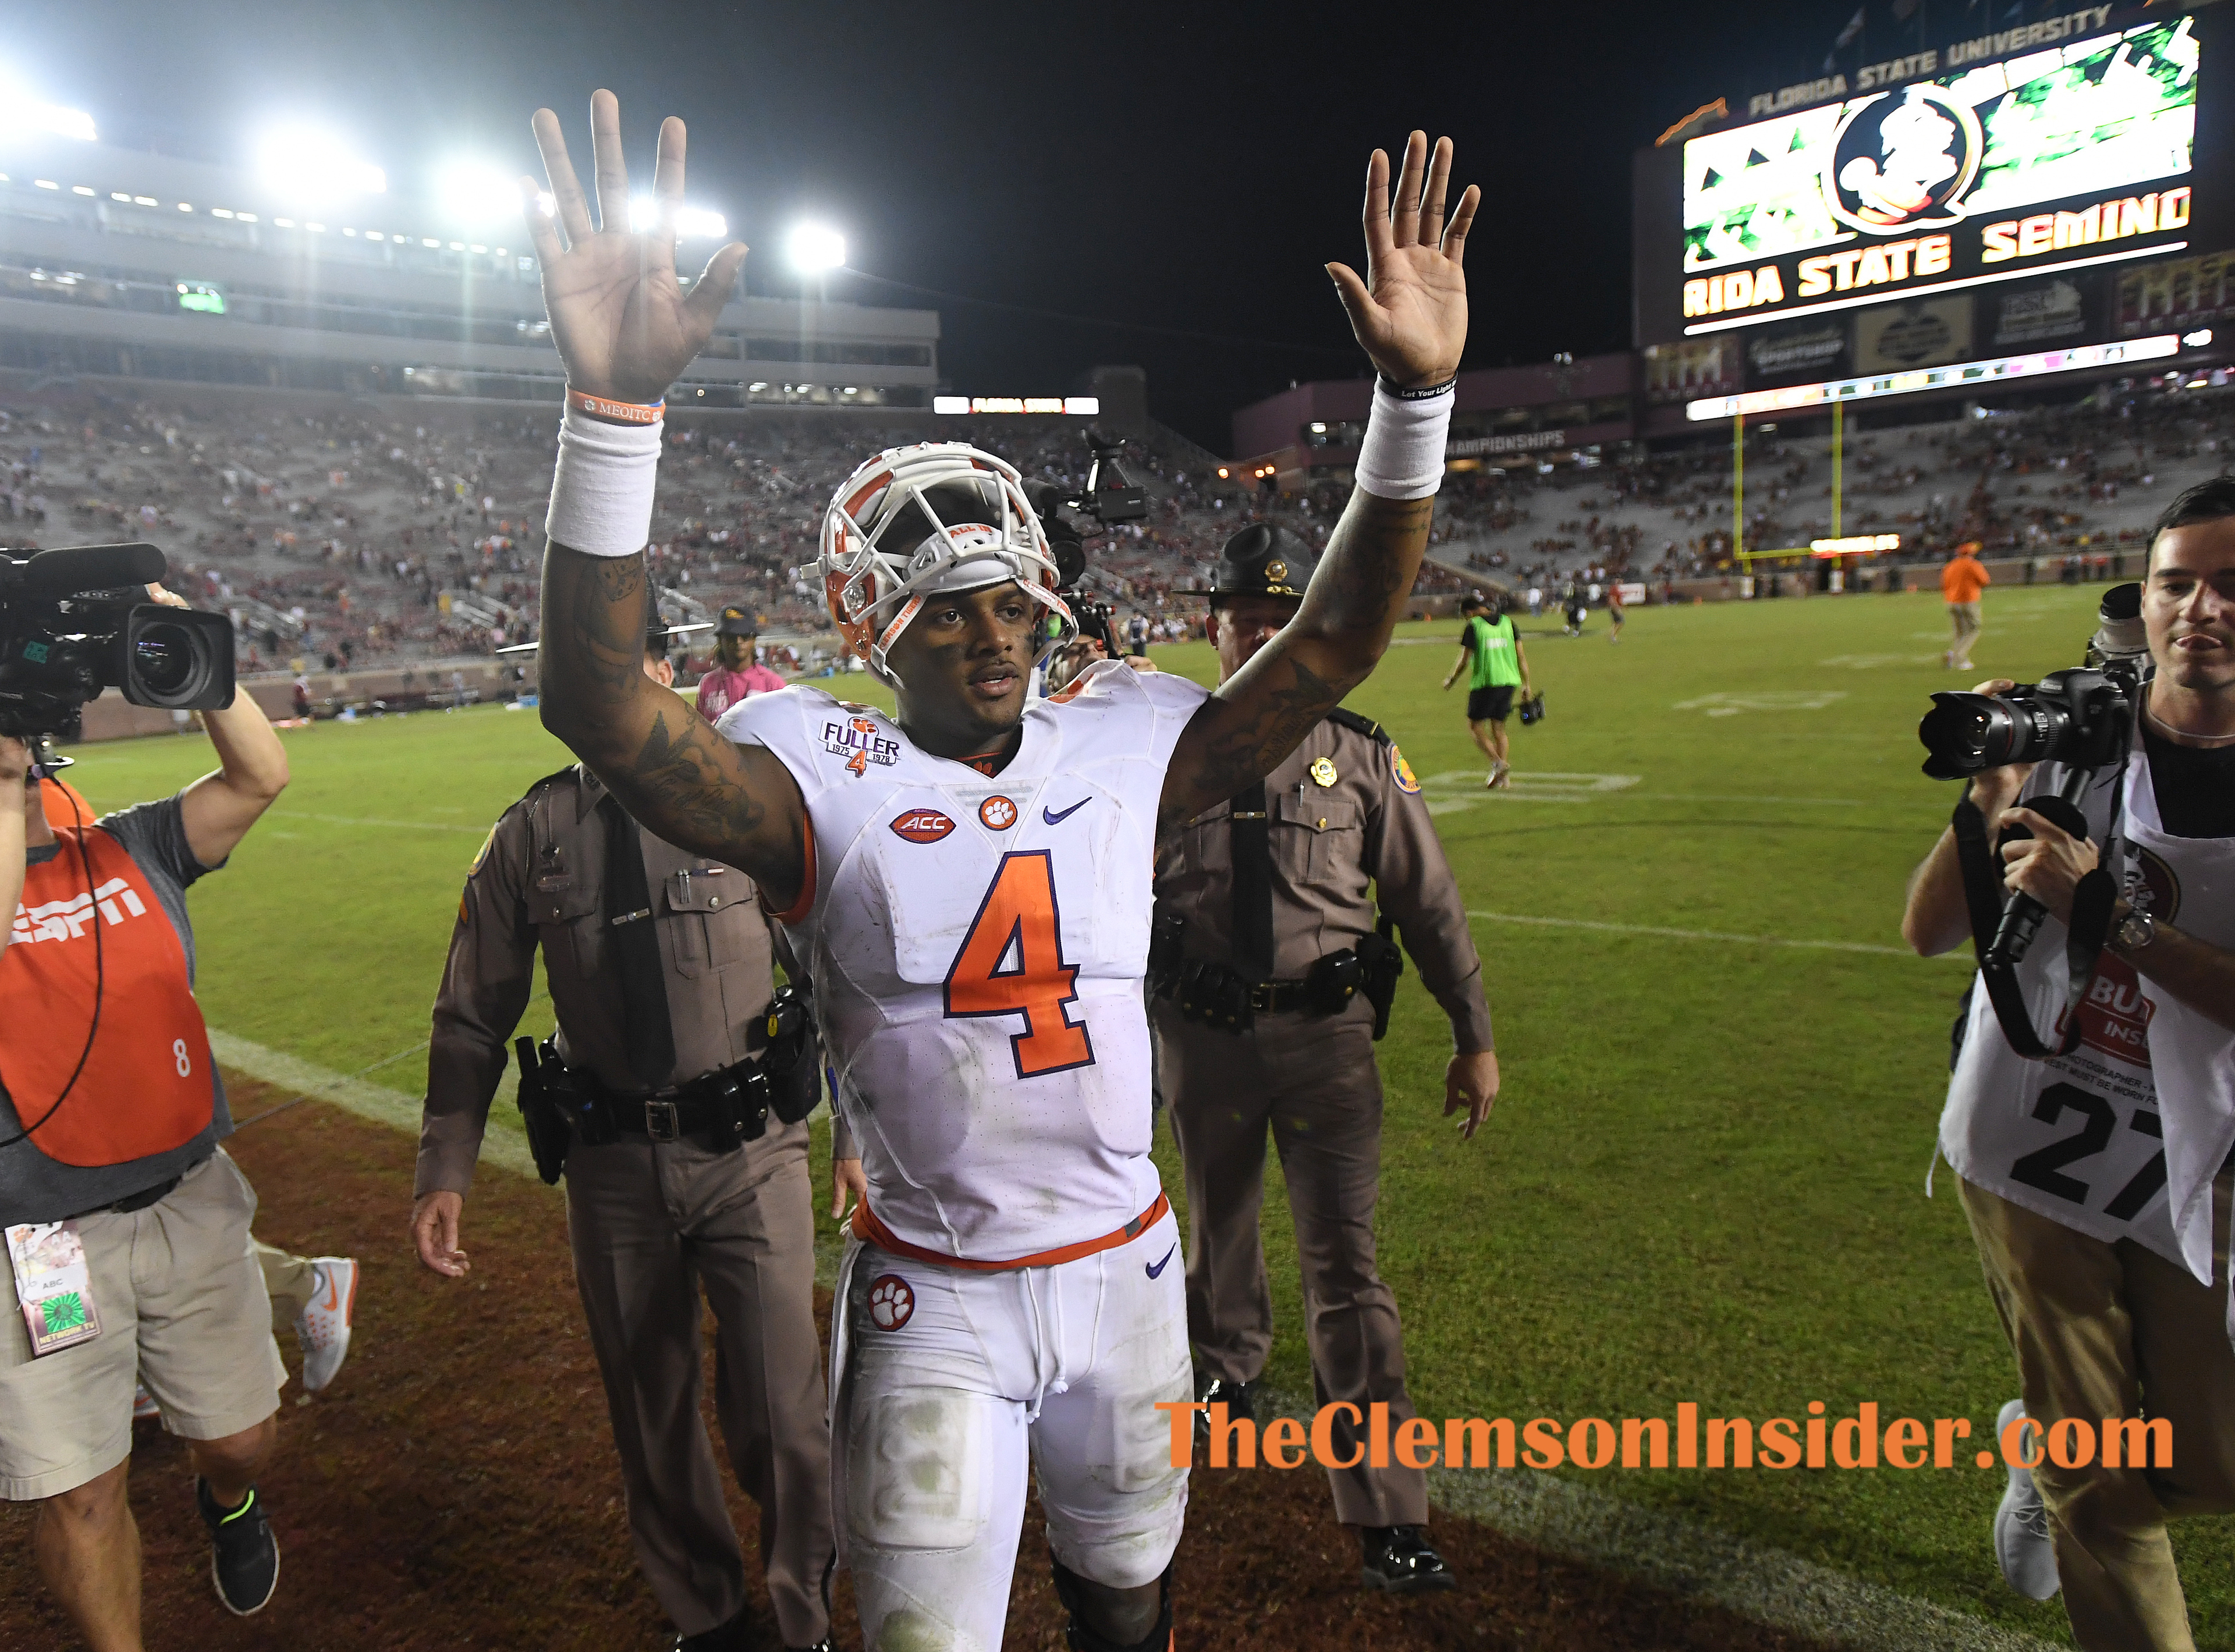 Clemson quarterback Deshaun Watson (4) after the Tigers 37-34 win over Florida State at Florida State's Doak Campbell Stadium in Tallahassee, Fl. on Saturday, October 29, 2016.